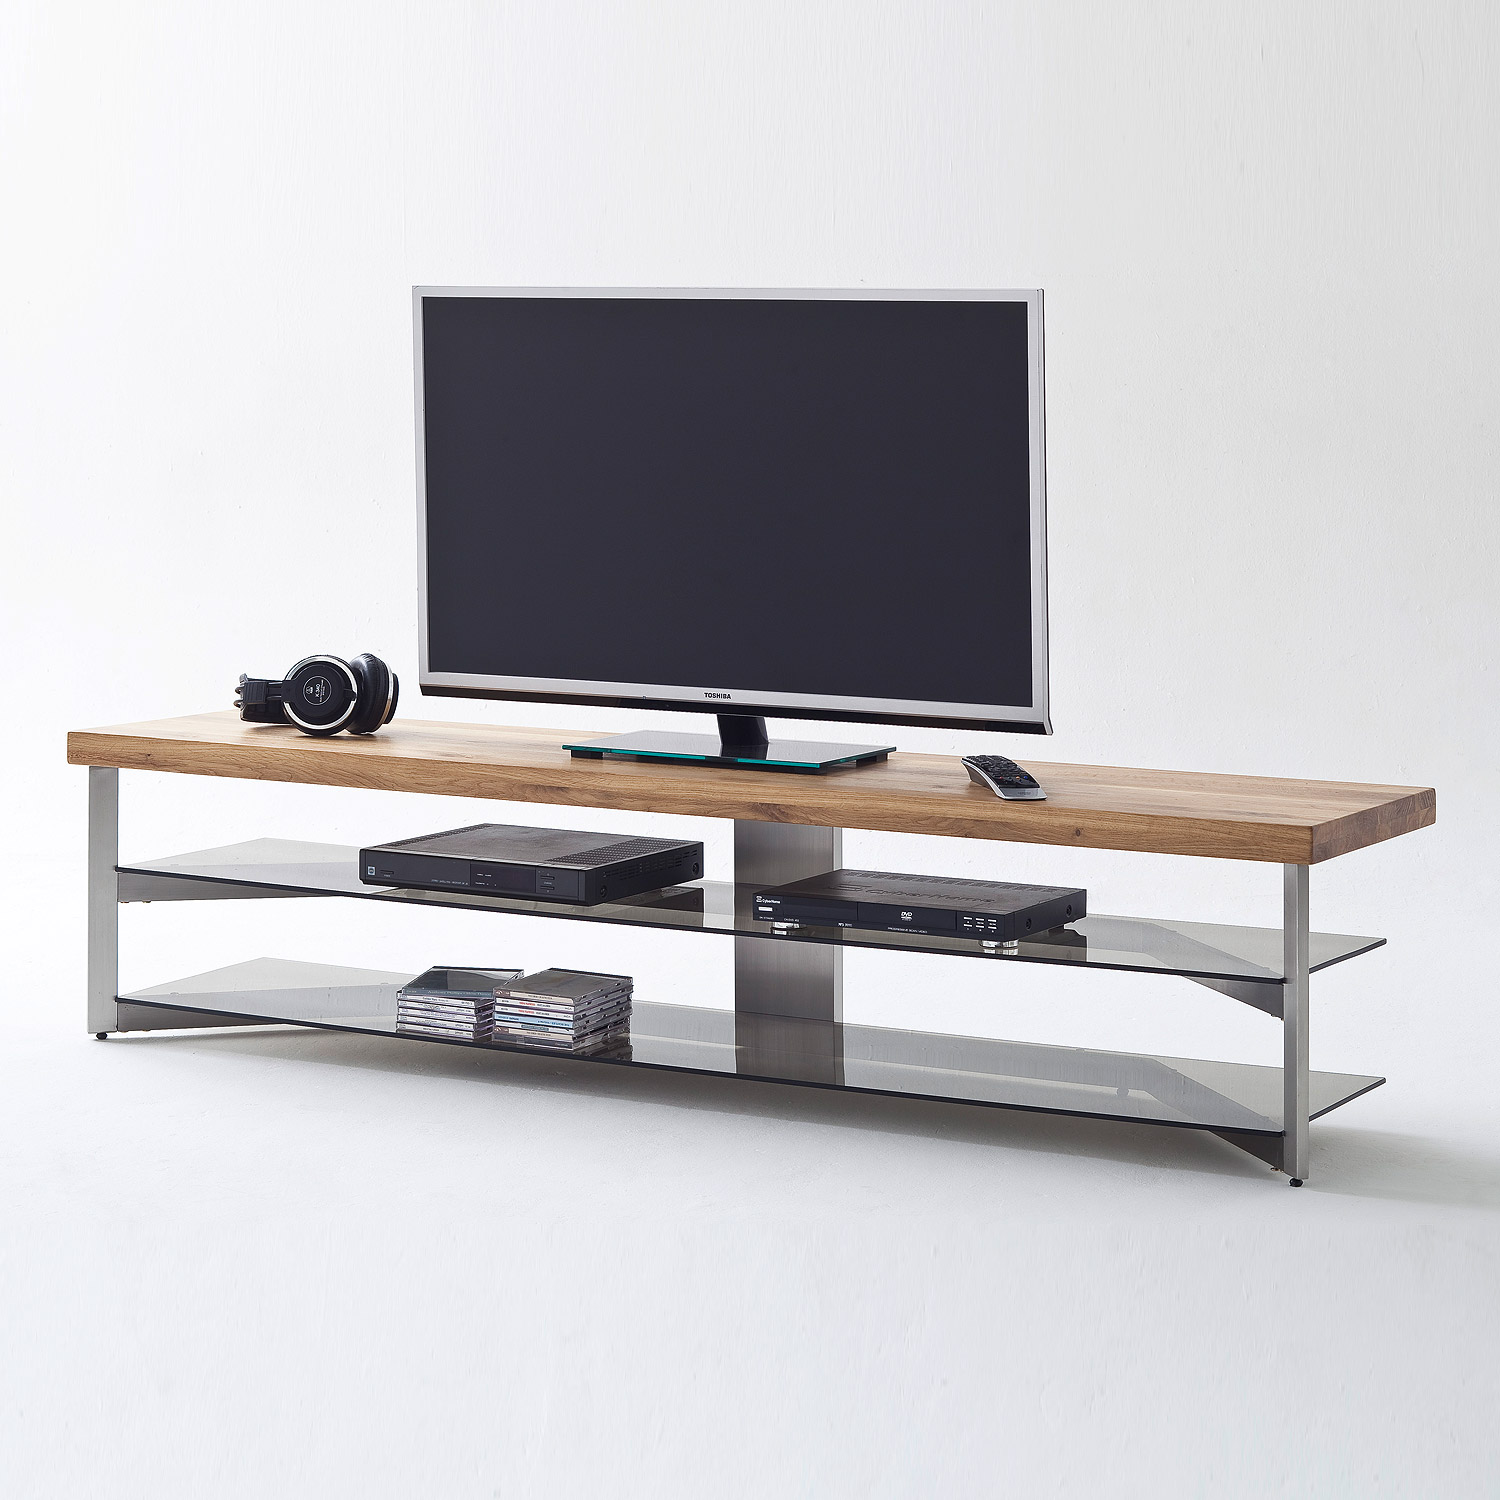 media rack fabia lowboard tv board eiche massiv glas grau. Black Bedroom Furniture Sets. Home Design Ideas